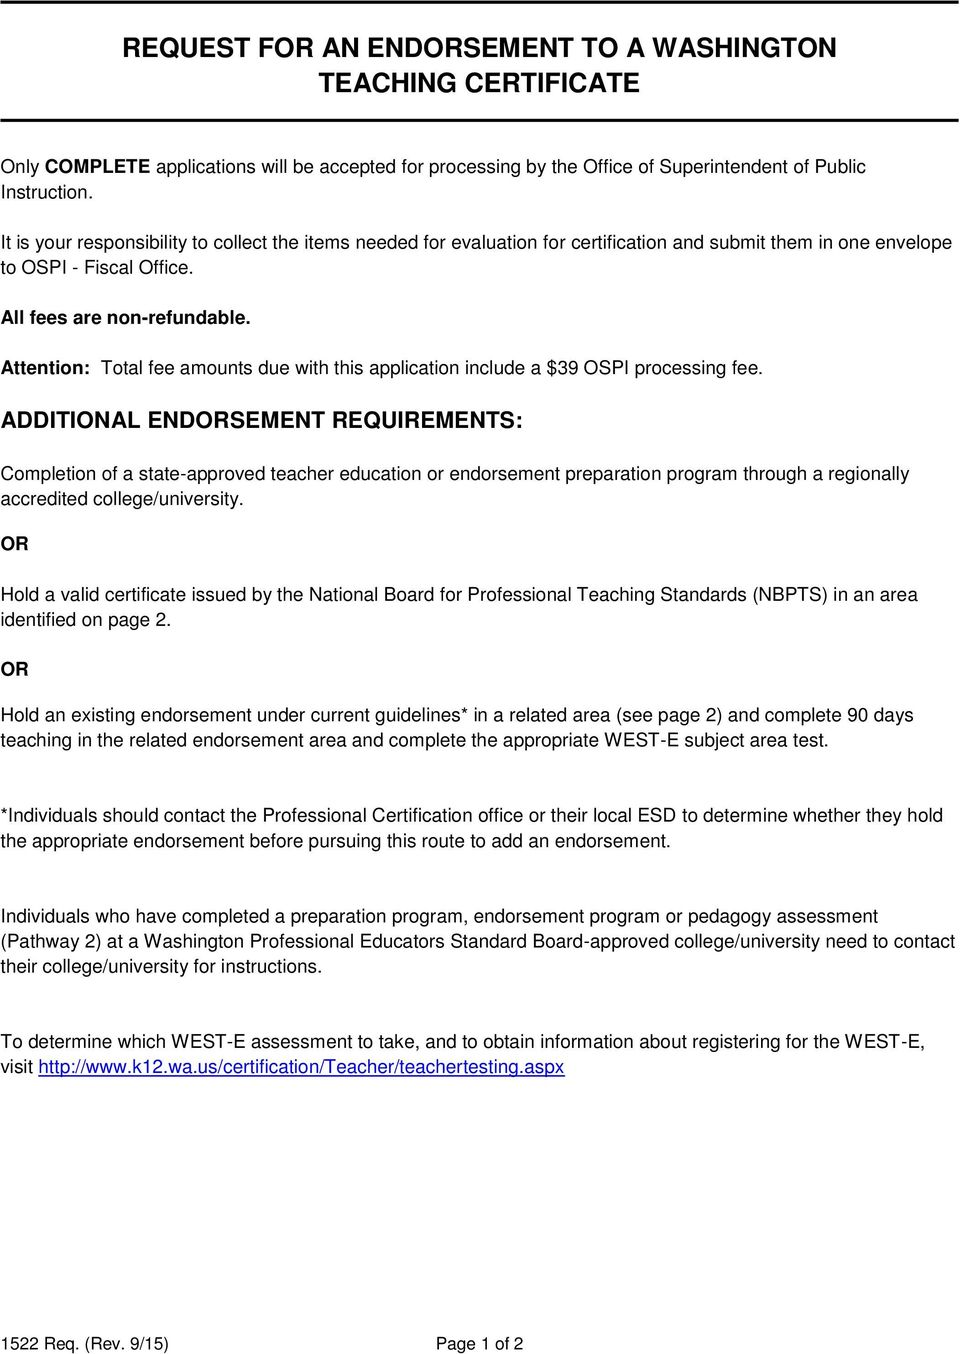 Request For An Endorsement To A Washington Teaching Certificate Pdf